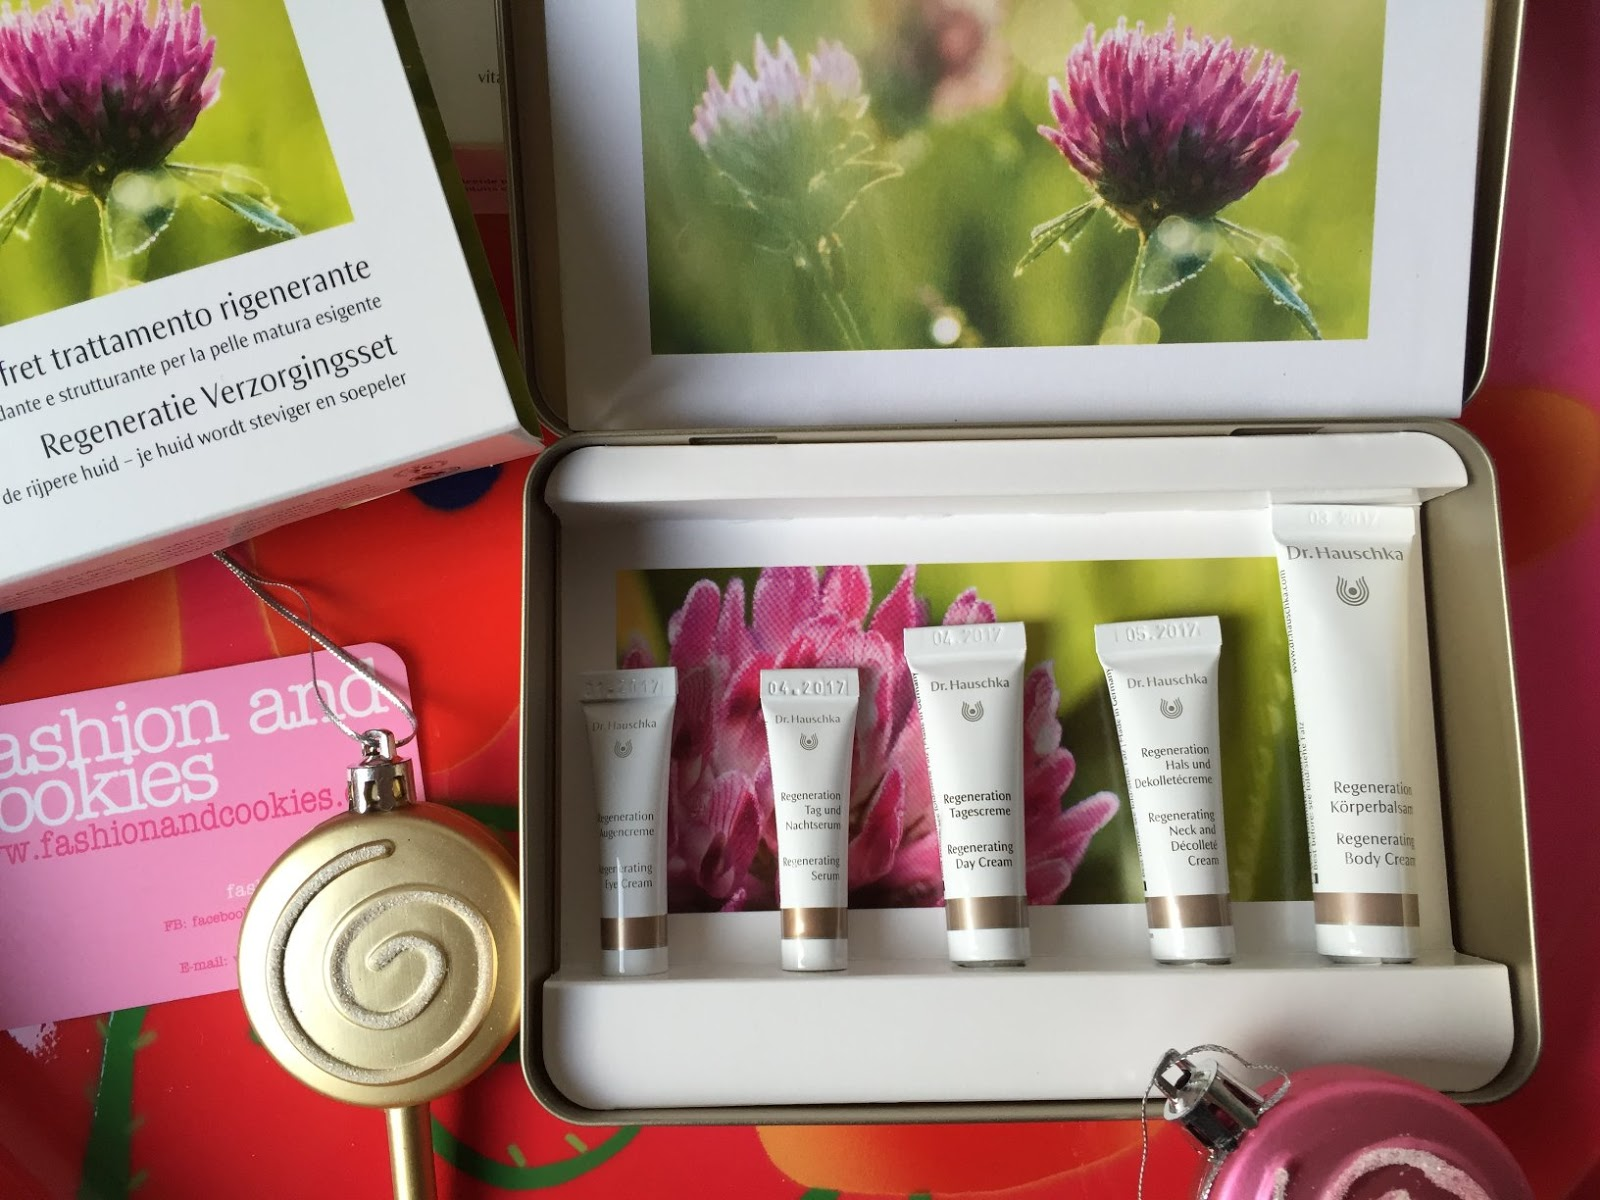 Dr. Hauschka Regenerating Skin Care Kit, Coffret Trattamento Rigenerante on Fashion and Cookies beauty blog, beauty blogger from Italy